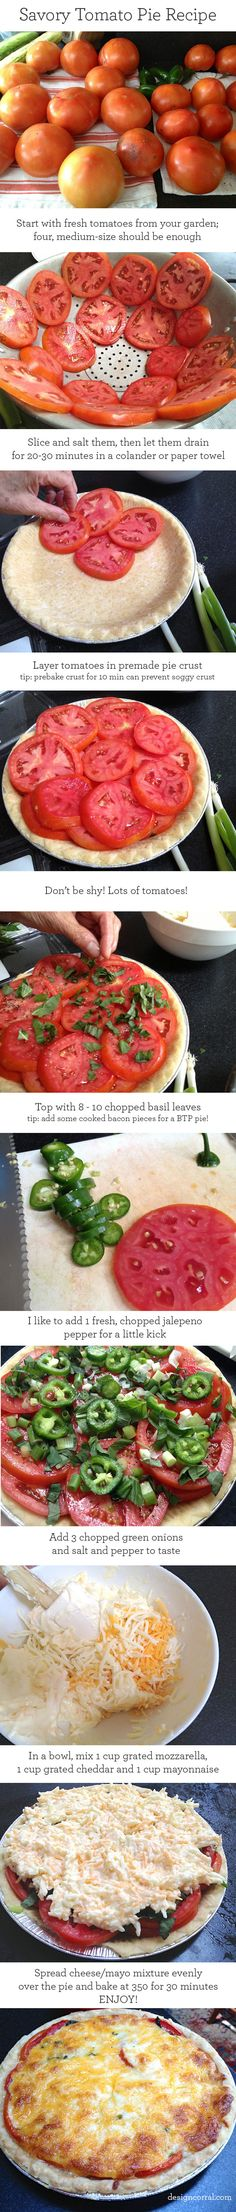 Savory tomato pie recipe